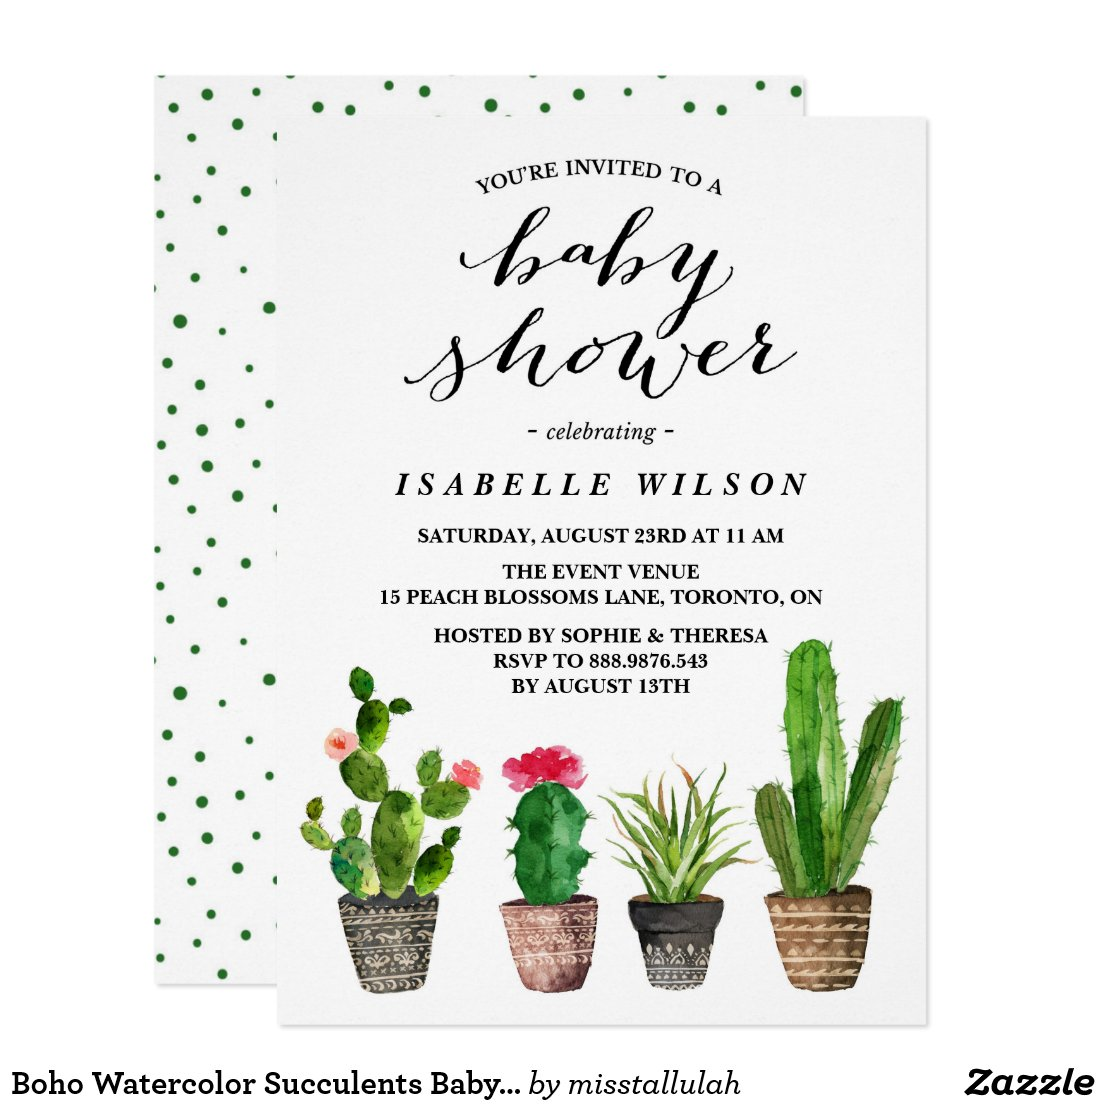 Boho Watercolor Succulents Baby Shower Invitation